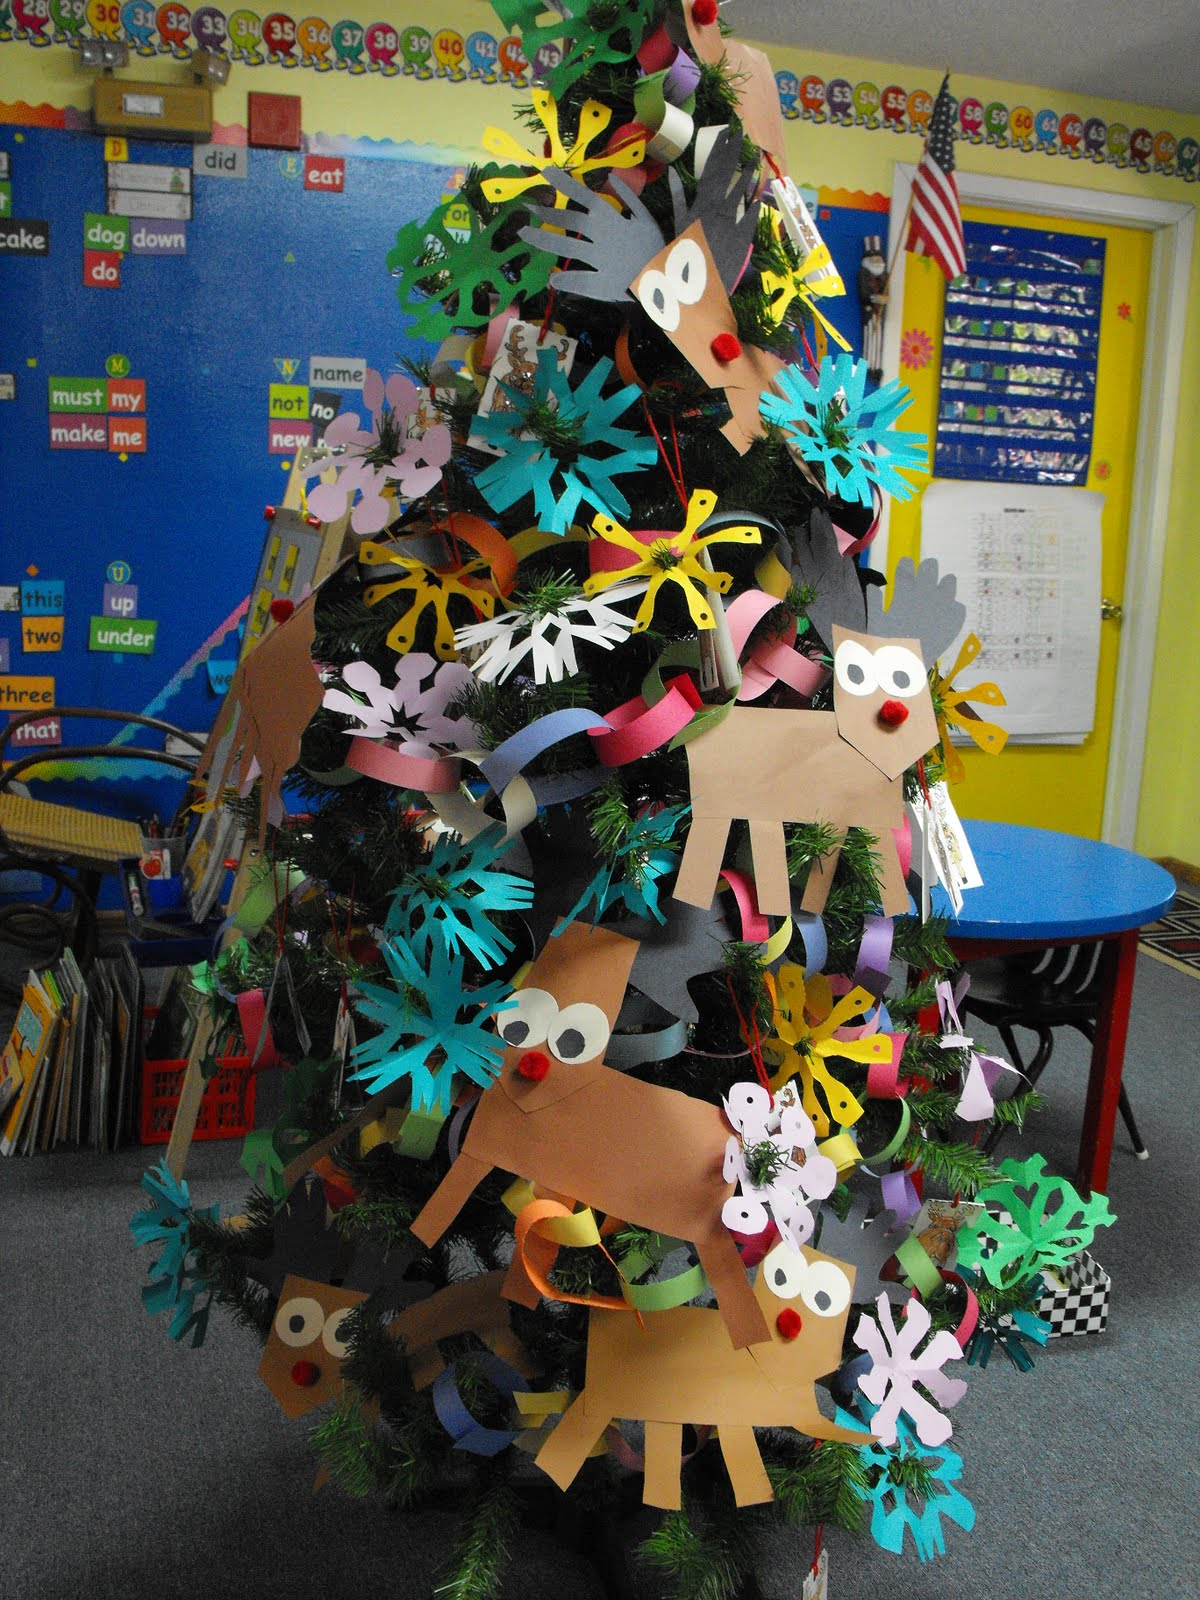 Completed Christmas Tree on 2015 December Calendar With Penguins